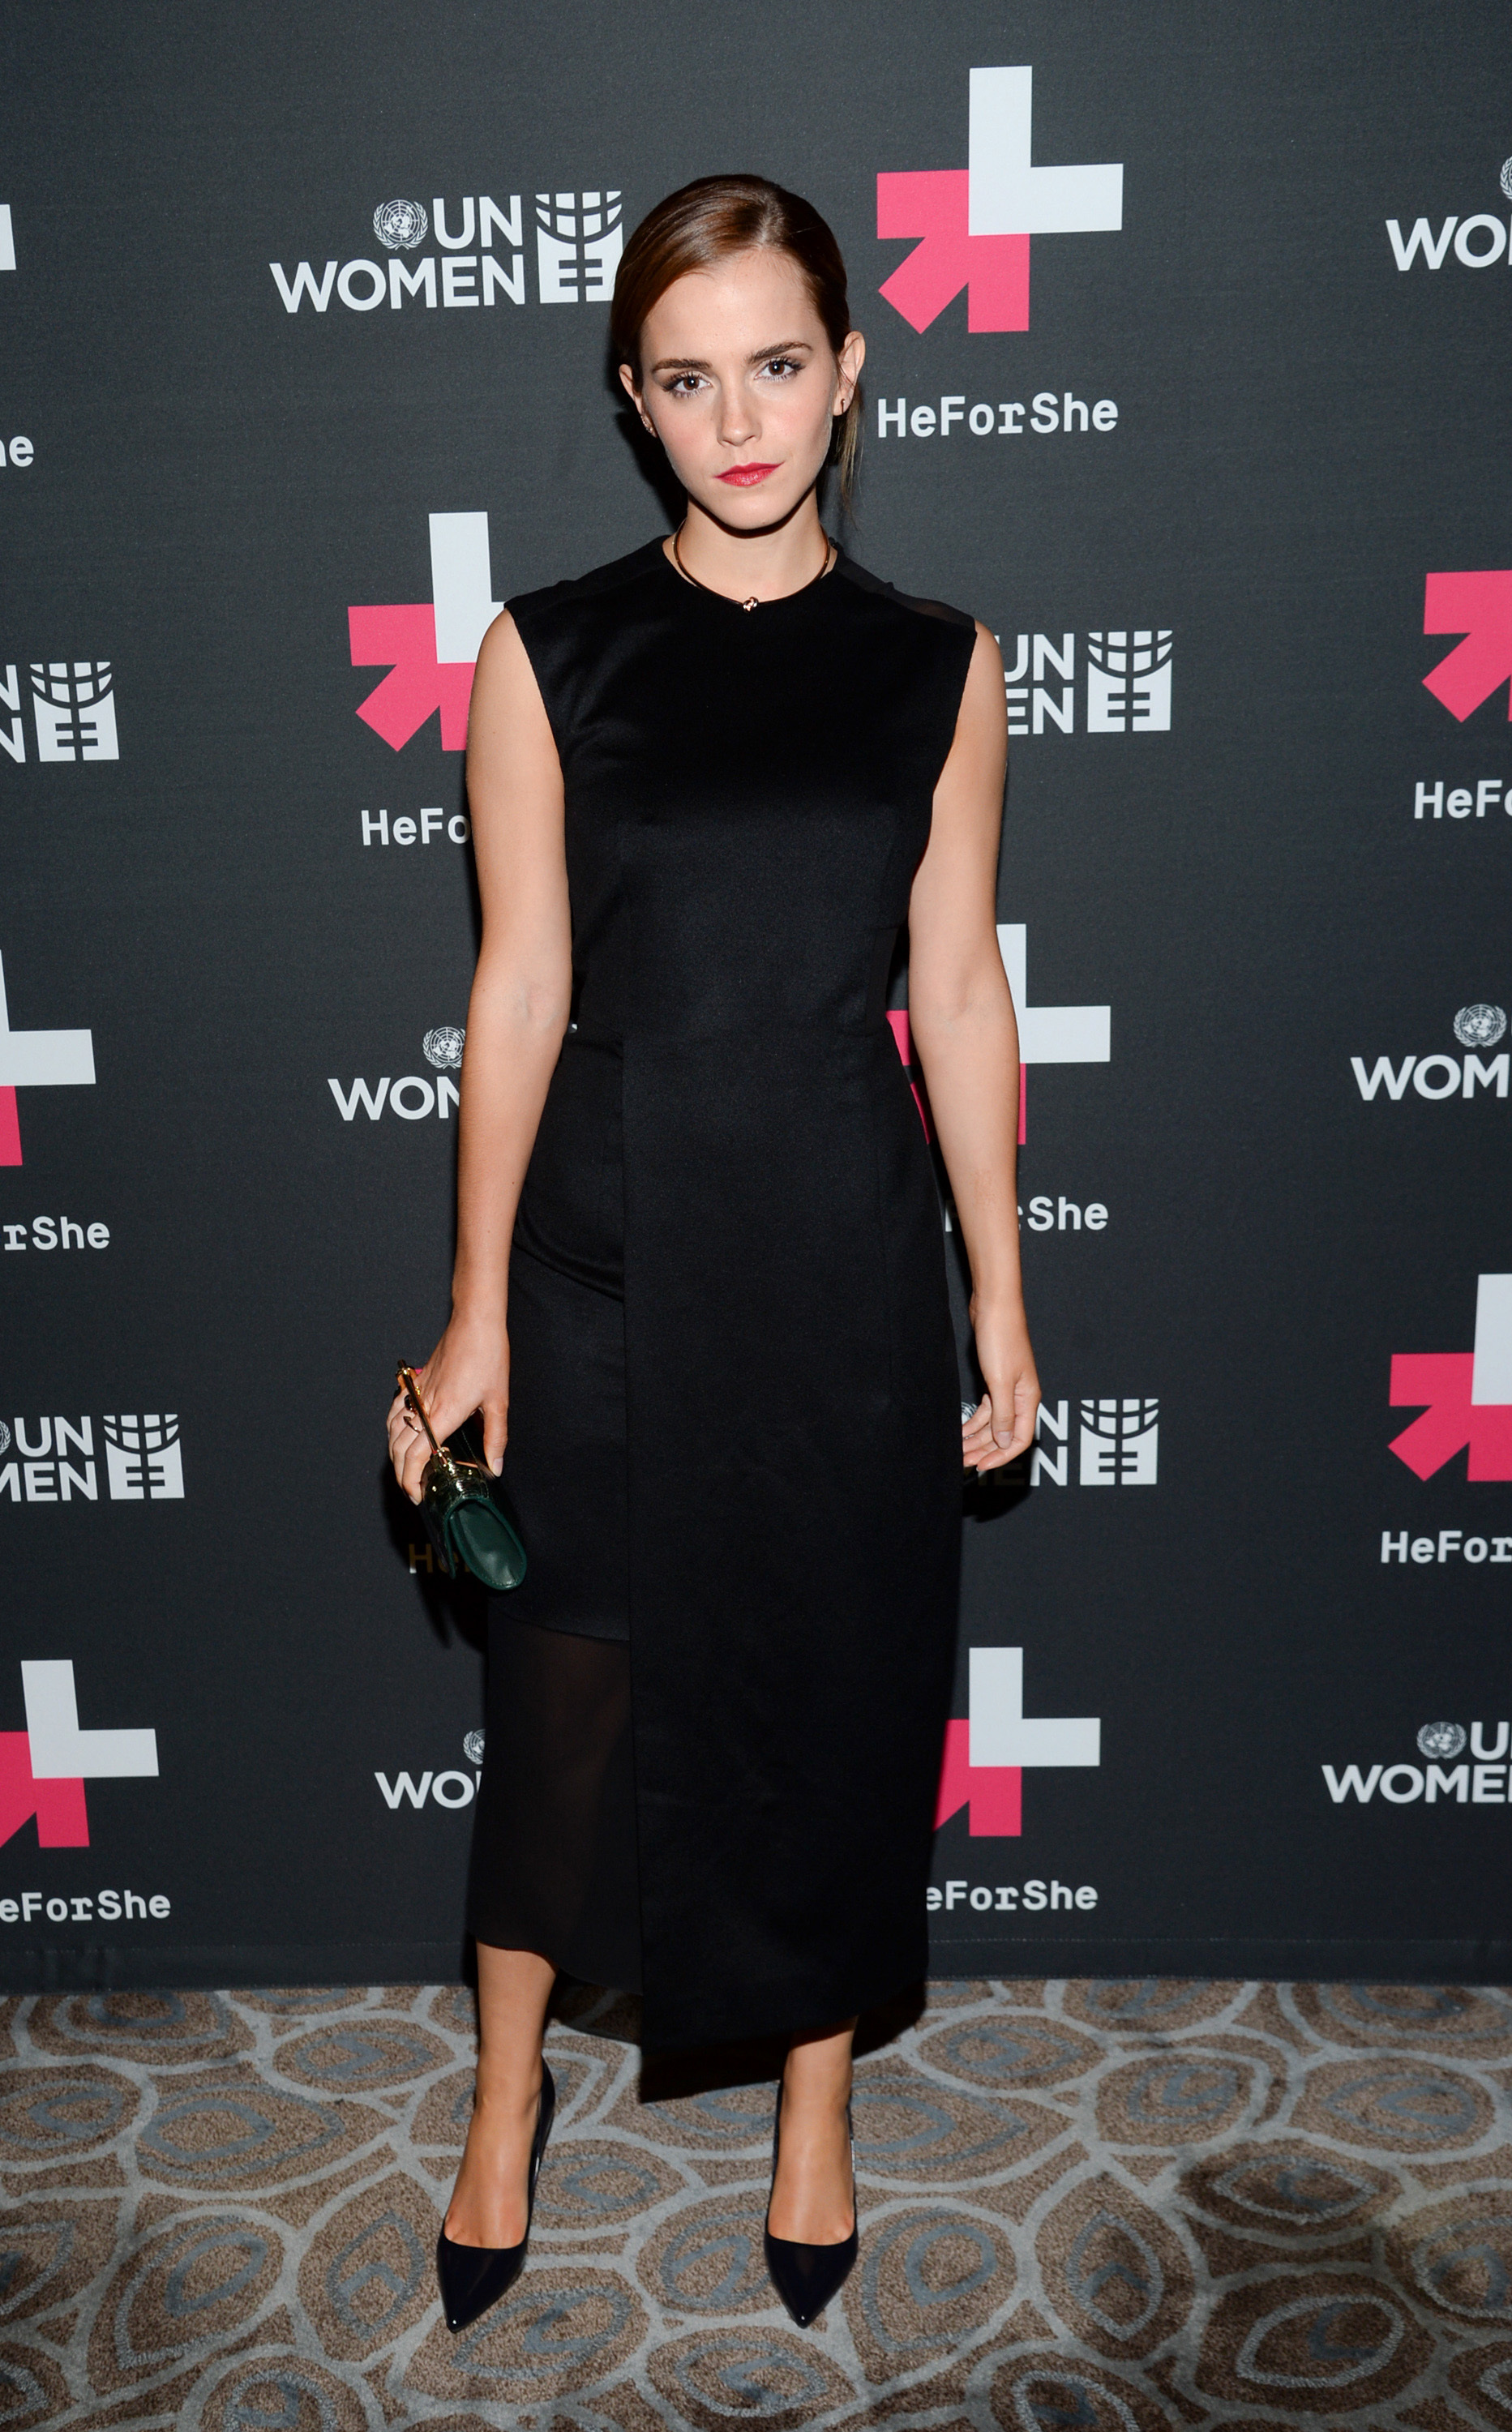 Emma Watson delivers new HeForShe speech at Davos